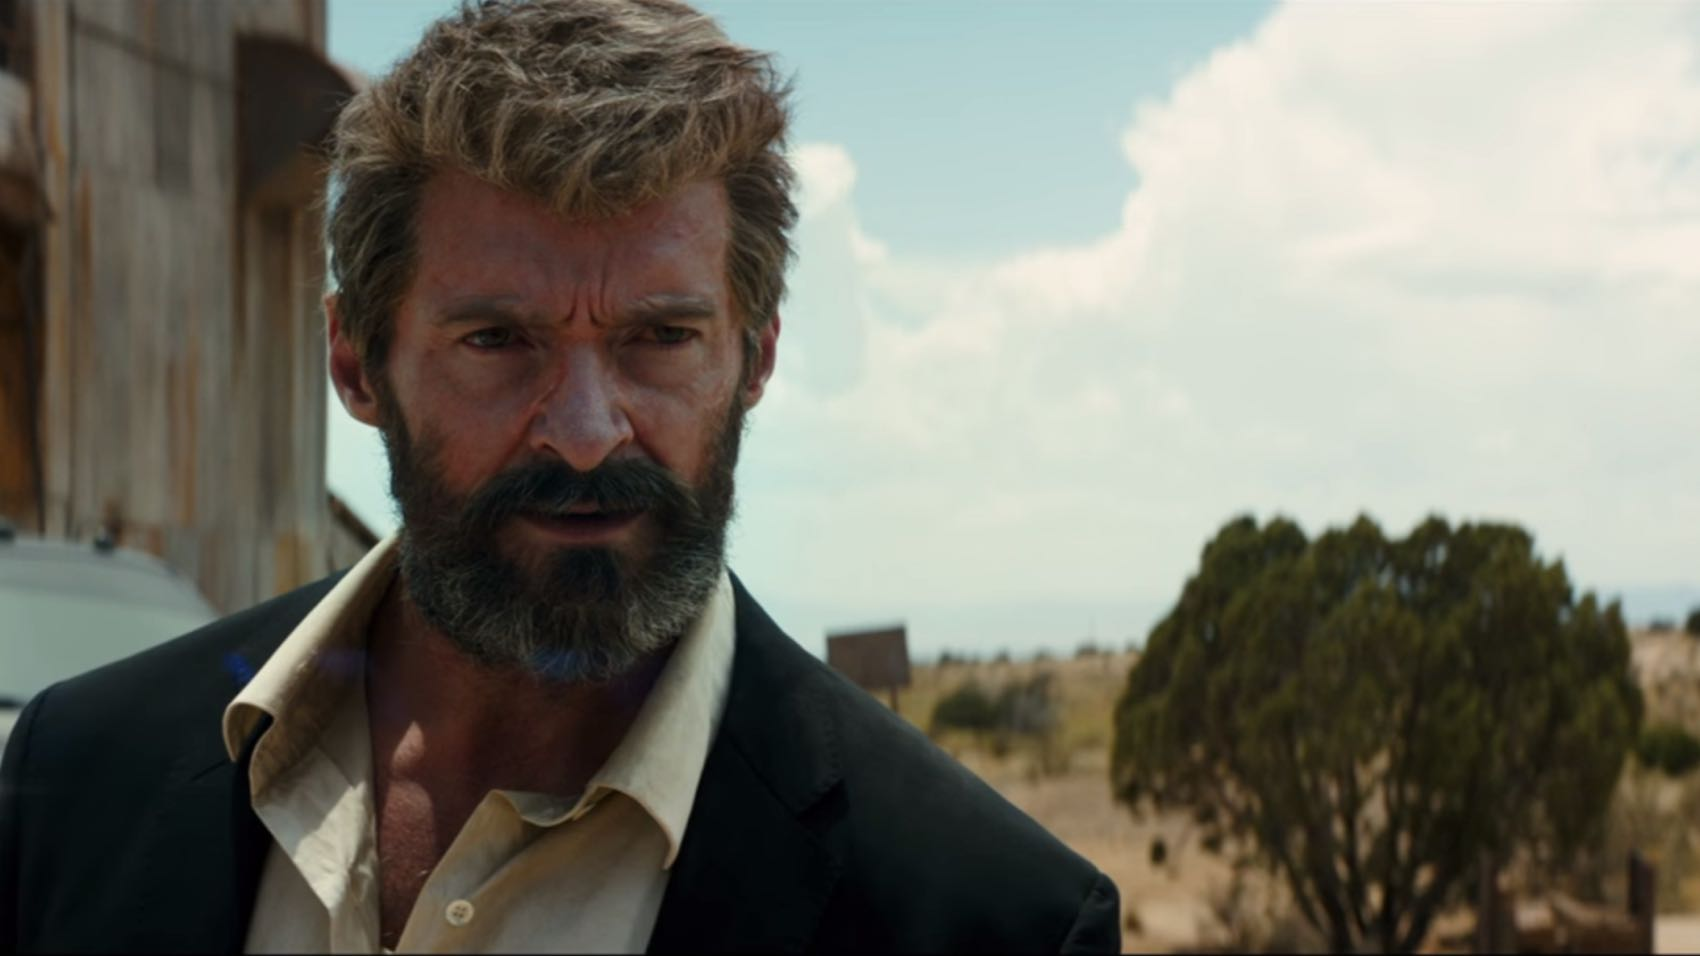 Hugh Jackman Reveals The Official Synopsis Of Logan